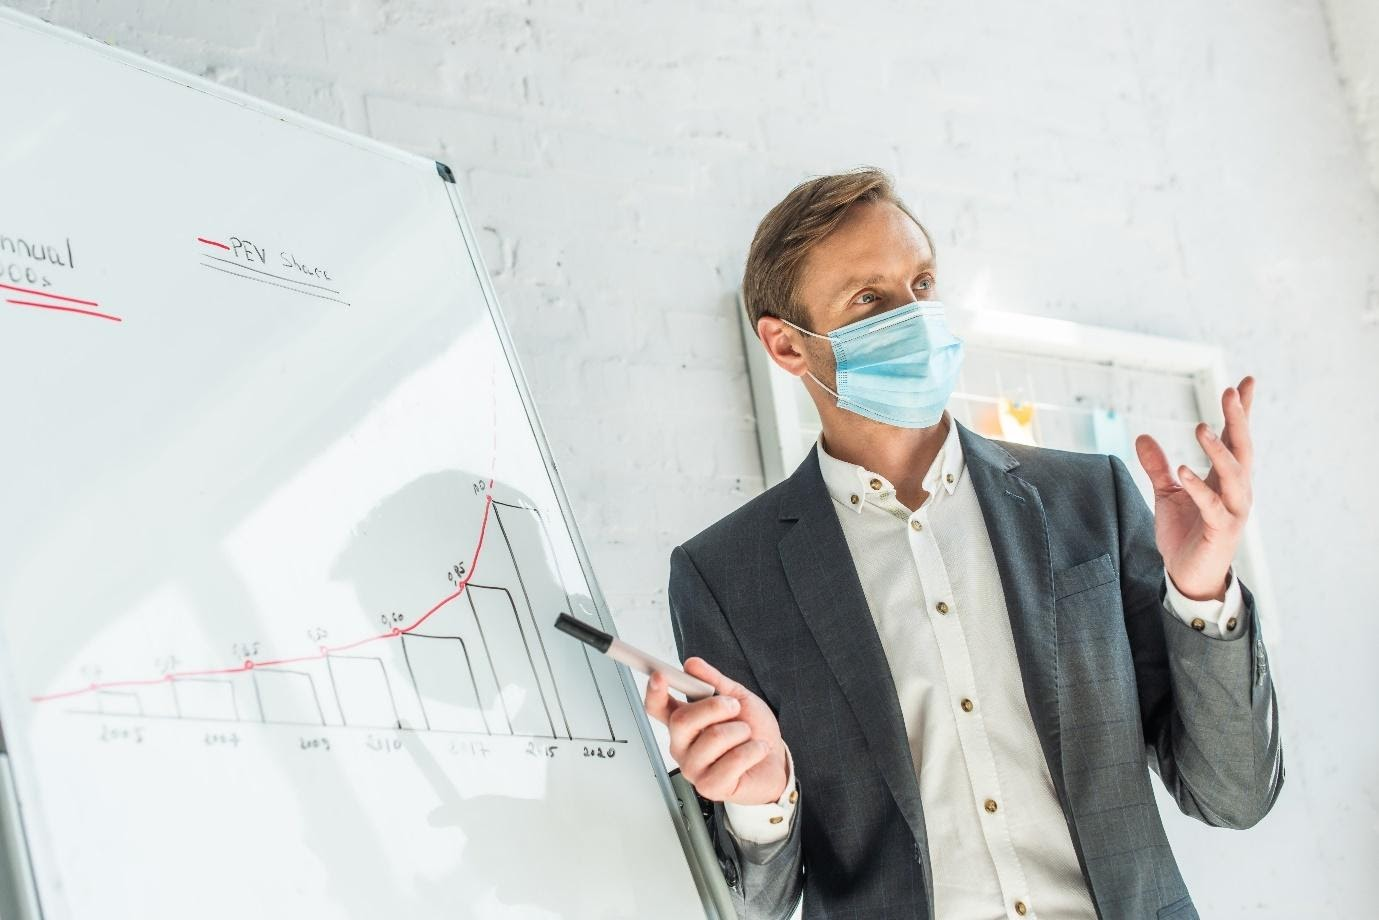 A person wearing a mask and holding a pen  Description automatically generated with low confidence